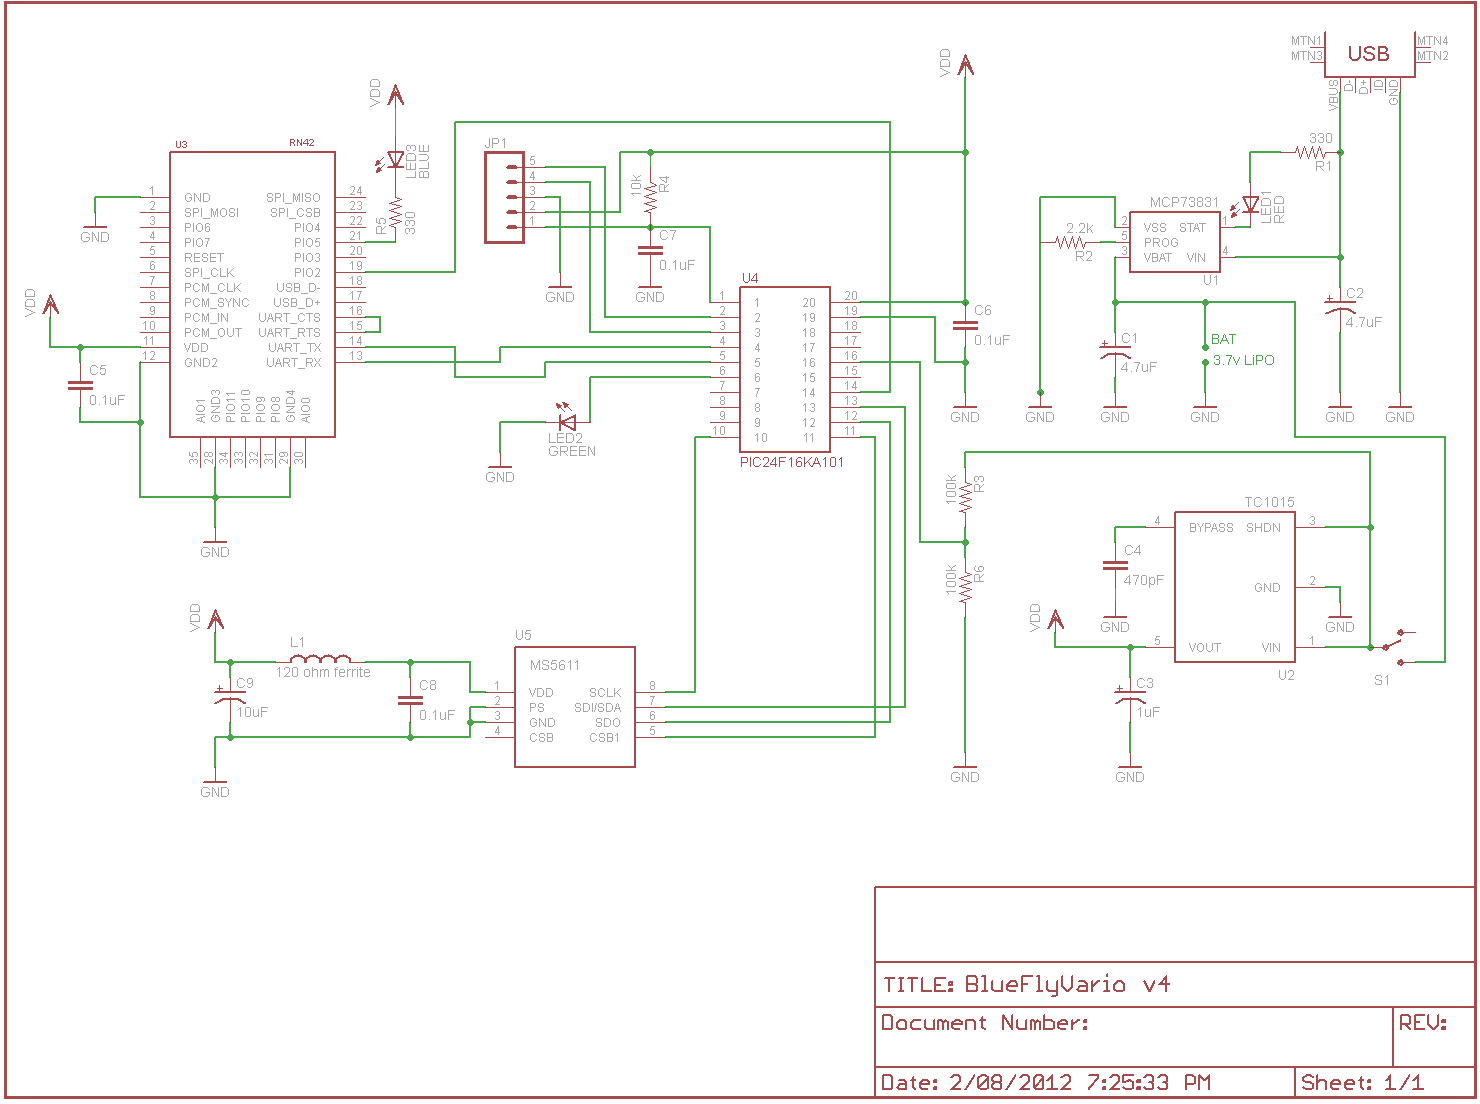 Below is a picture of the current circuit I am using for the prototypes. I  will spend a little time describing how it work and how to make it better.